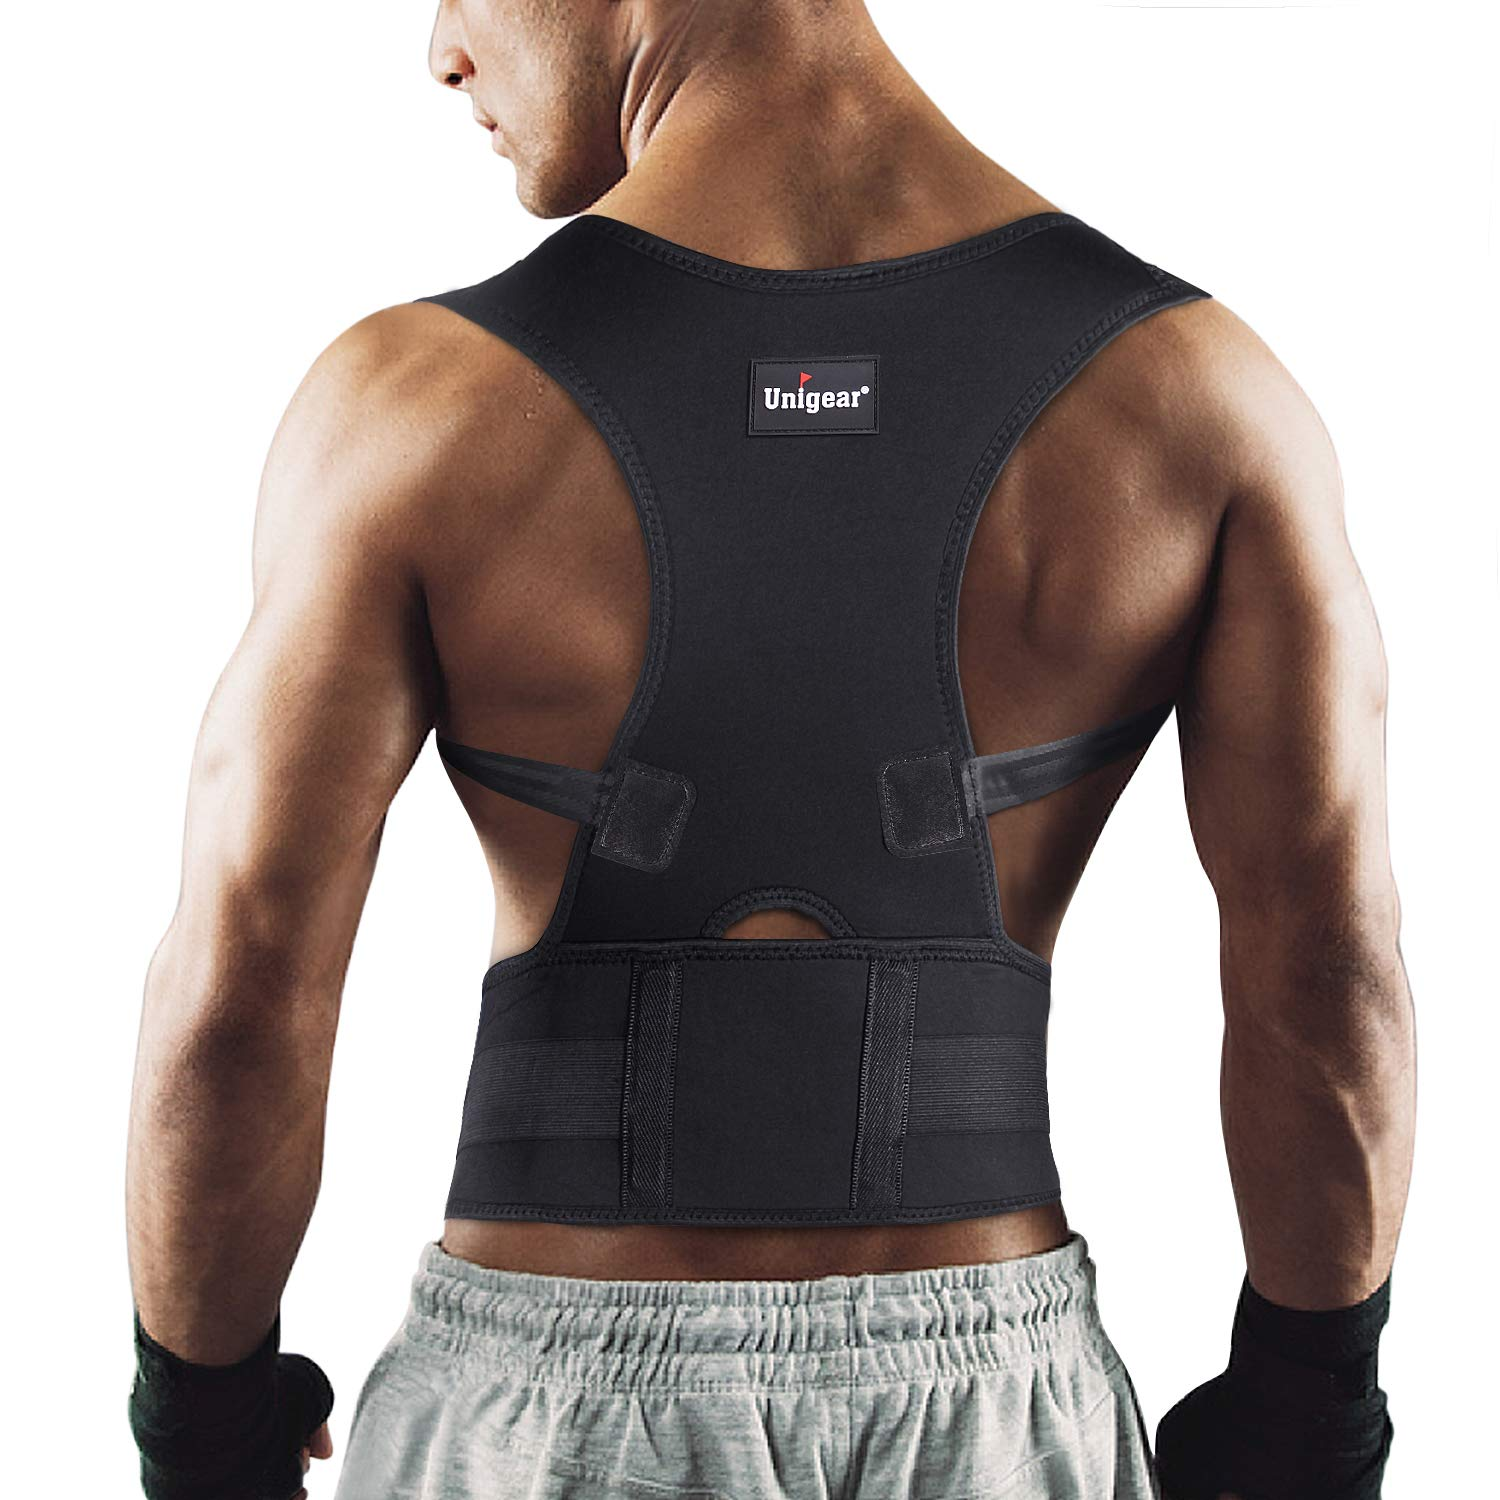 Back Brace Posture Corrector with Fully Adjustable Straps, Improve Posture and Provide Lumbar Support to Reduce Lower and Upper Back Pains, for Men and Women (Large)